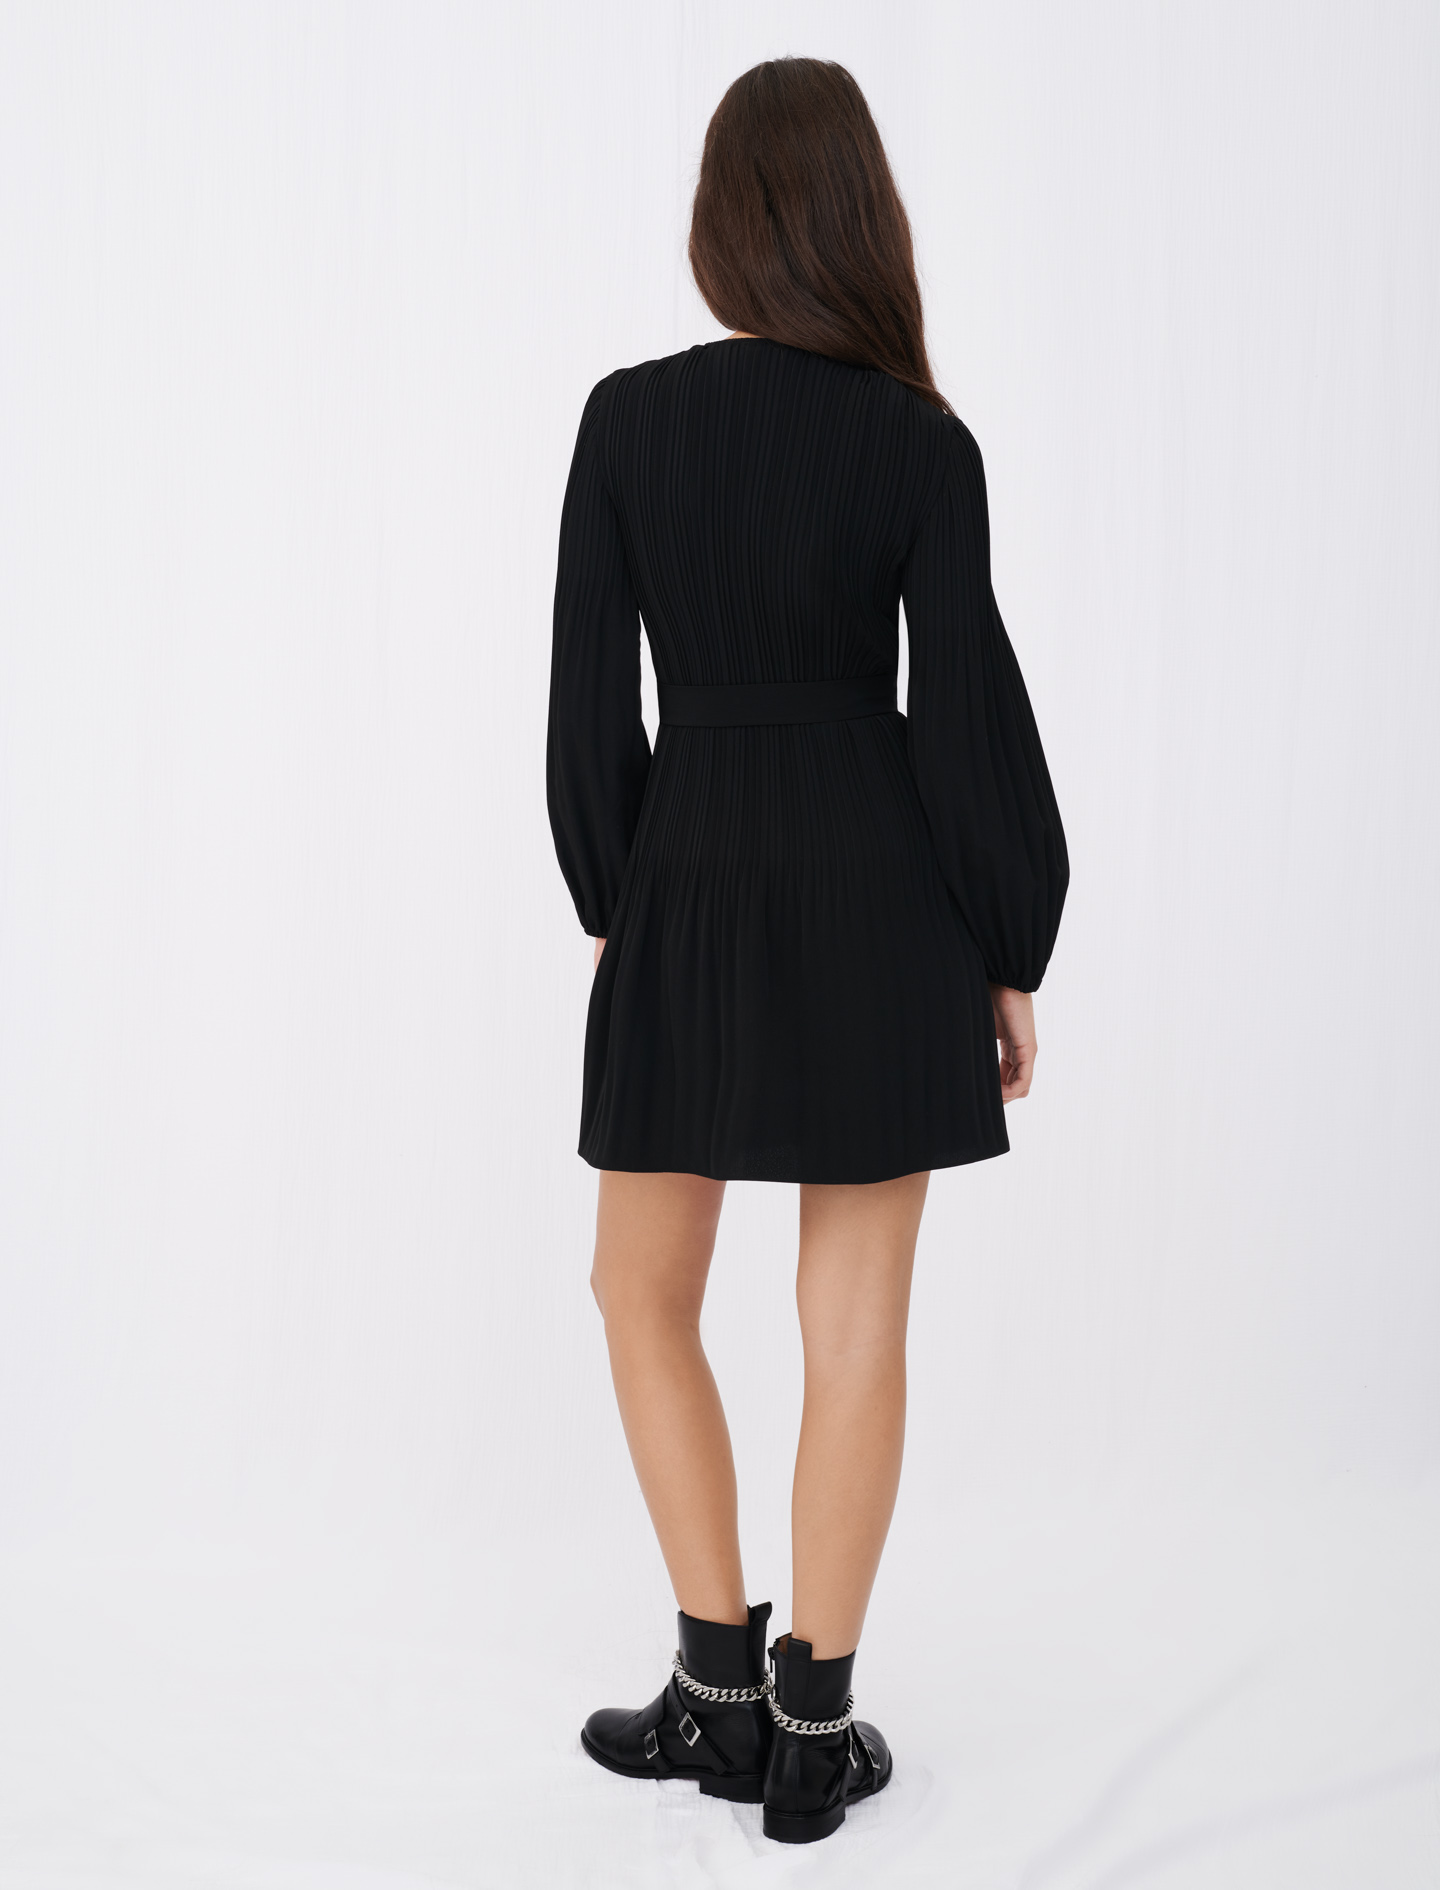 Maje rochanie black dress with buttons and sleeves